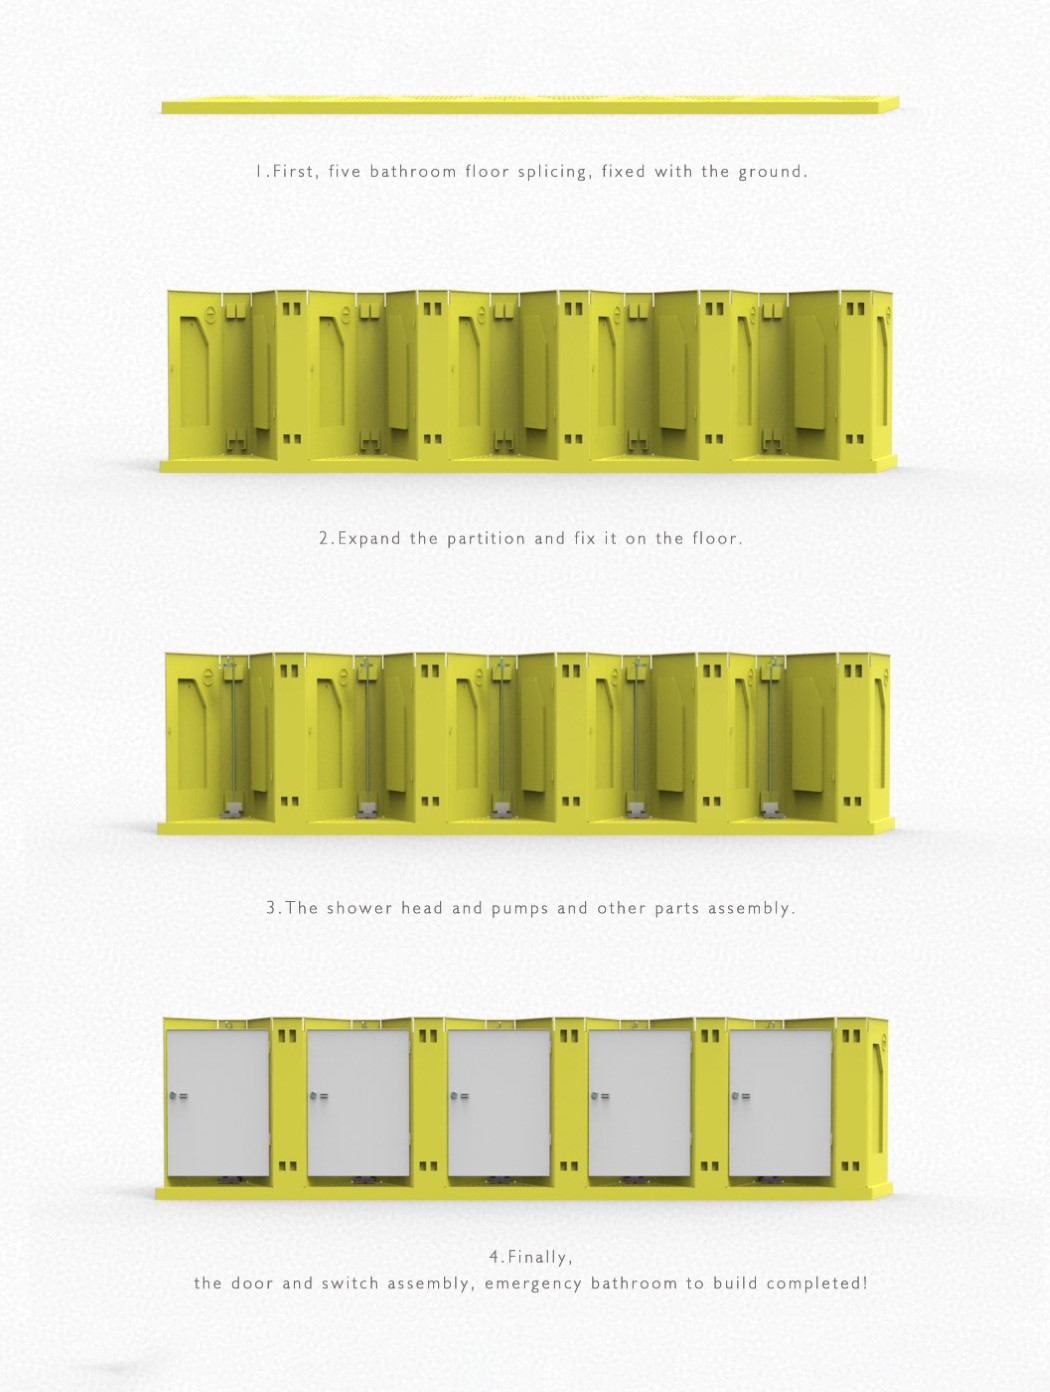 These foldable bathrooms can be instantly assembled at refugee camps